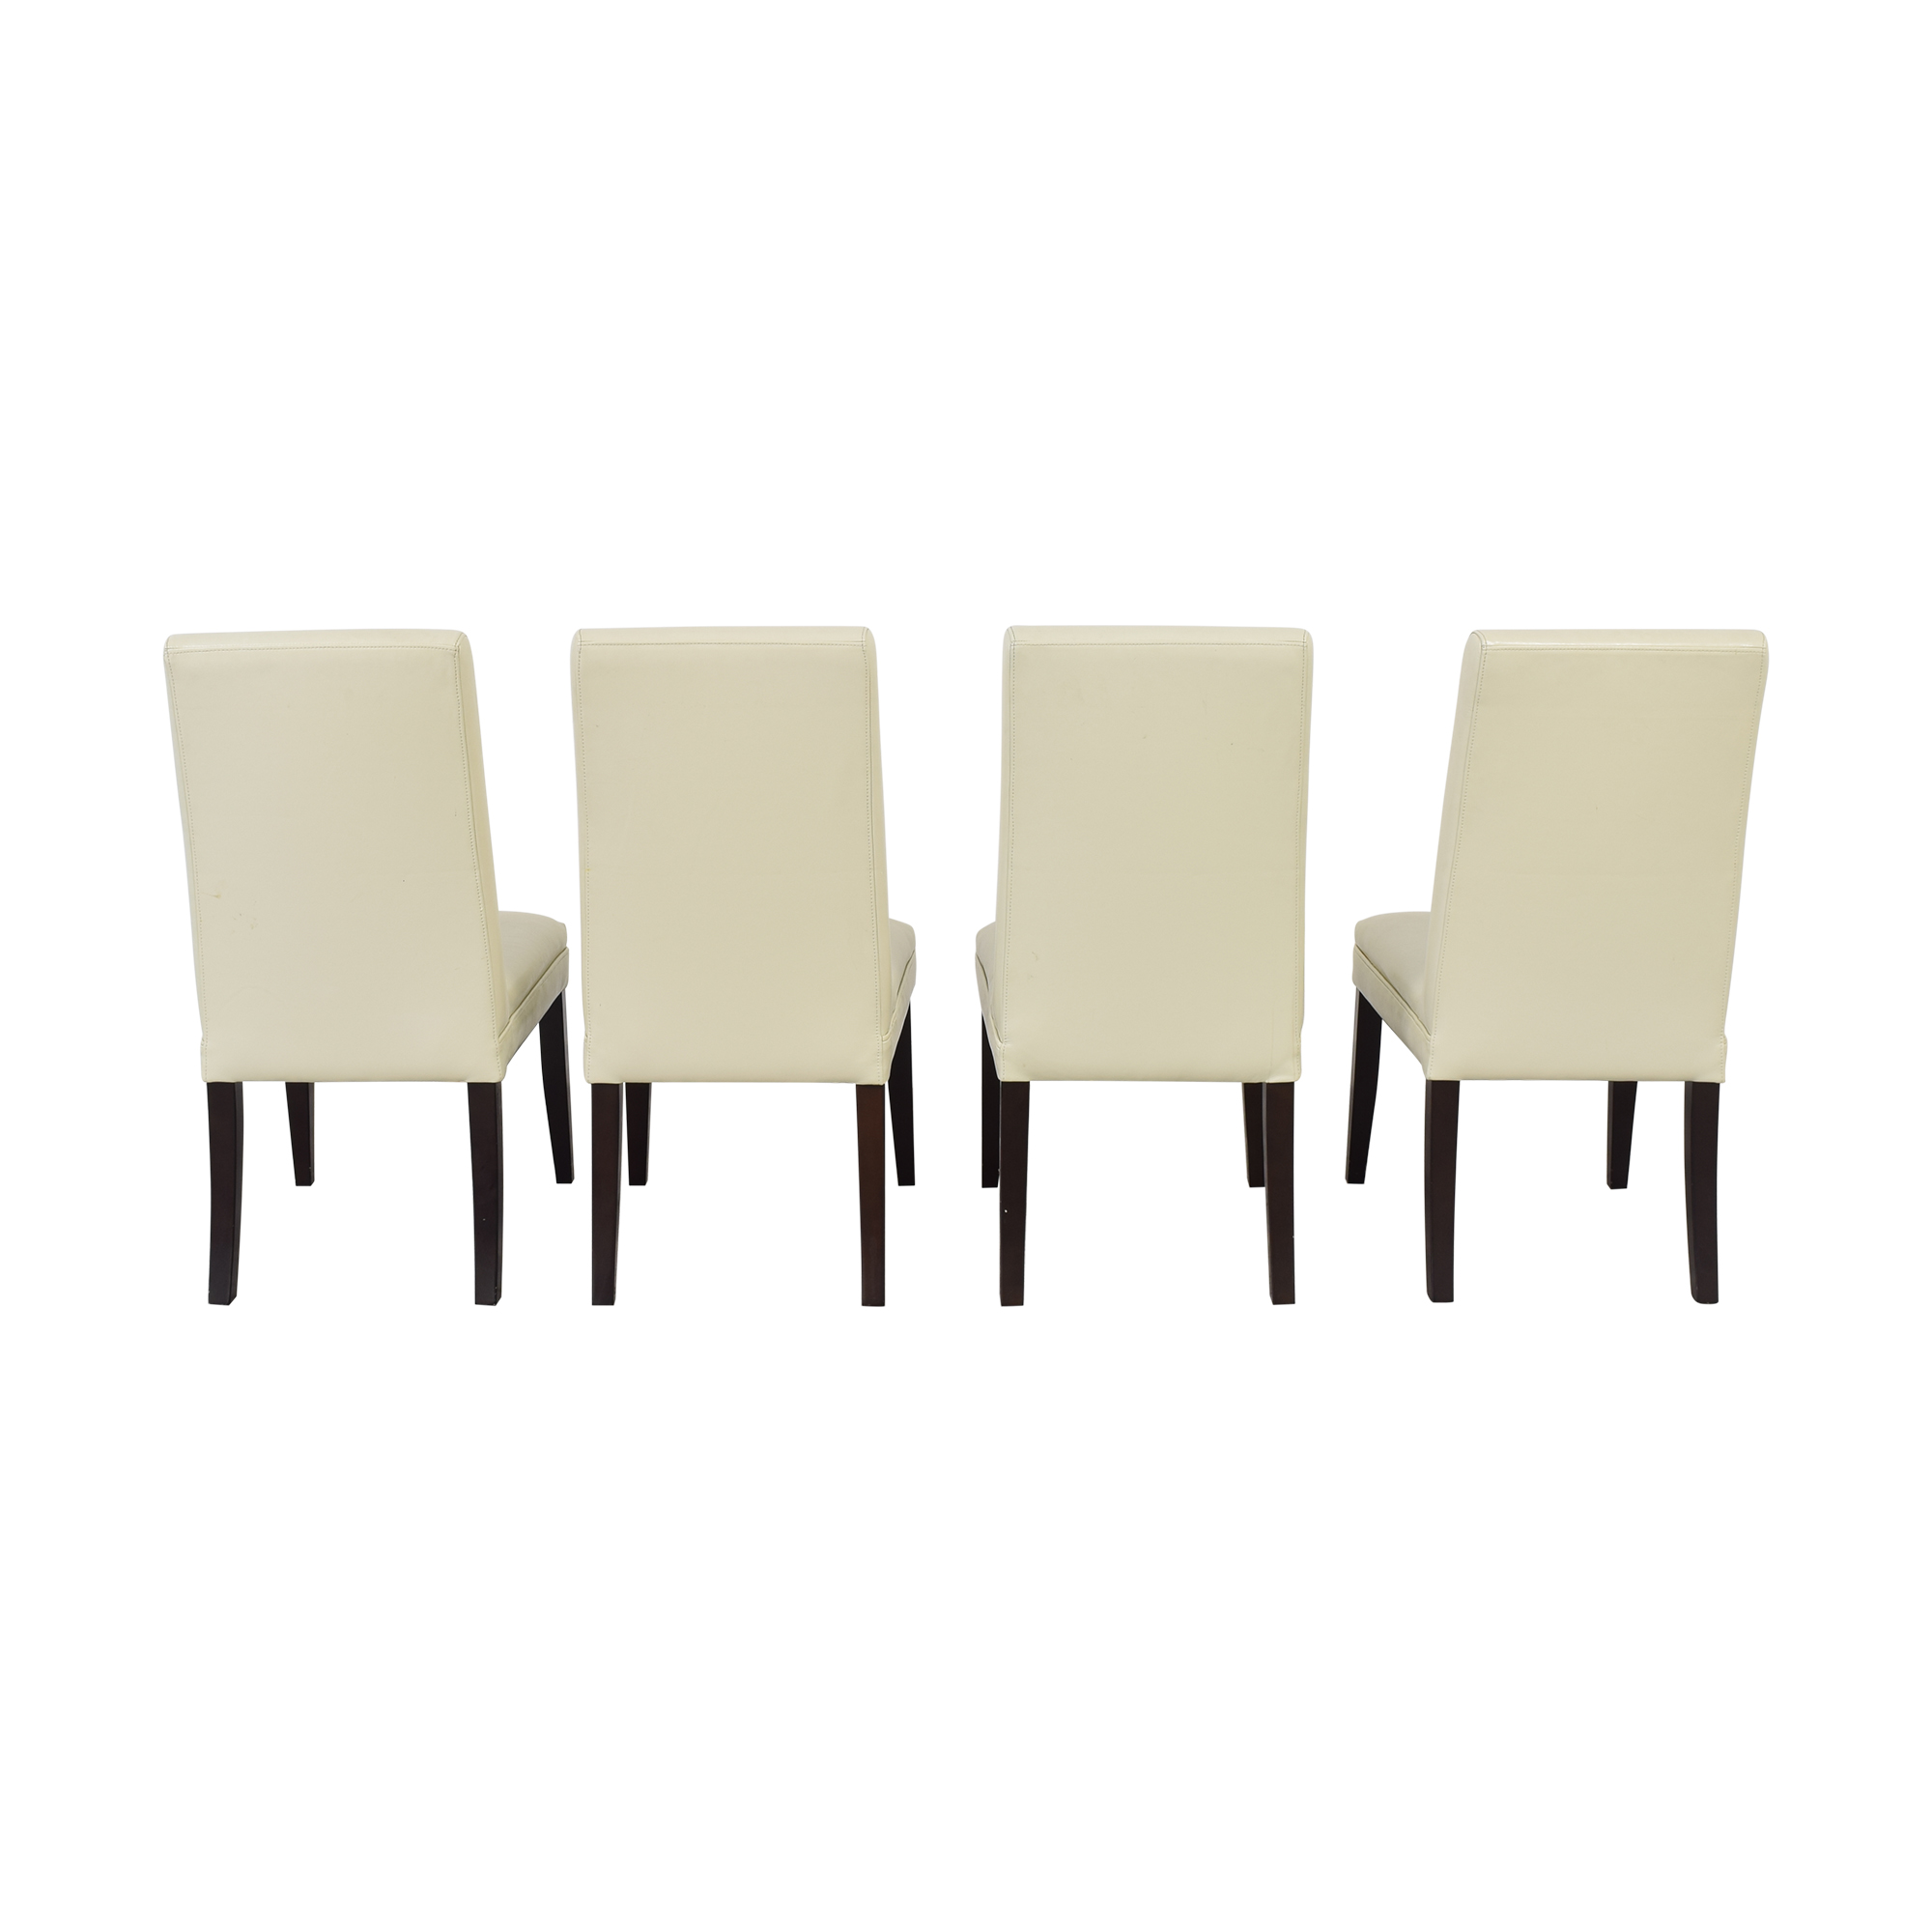 Macy's Macy's Dining Chairs off white